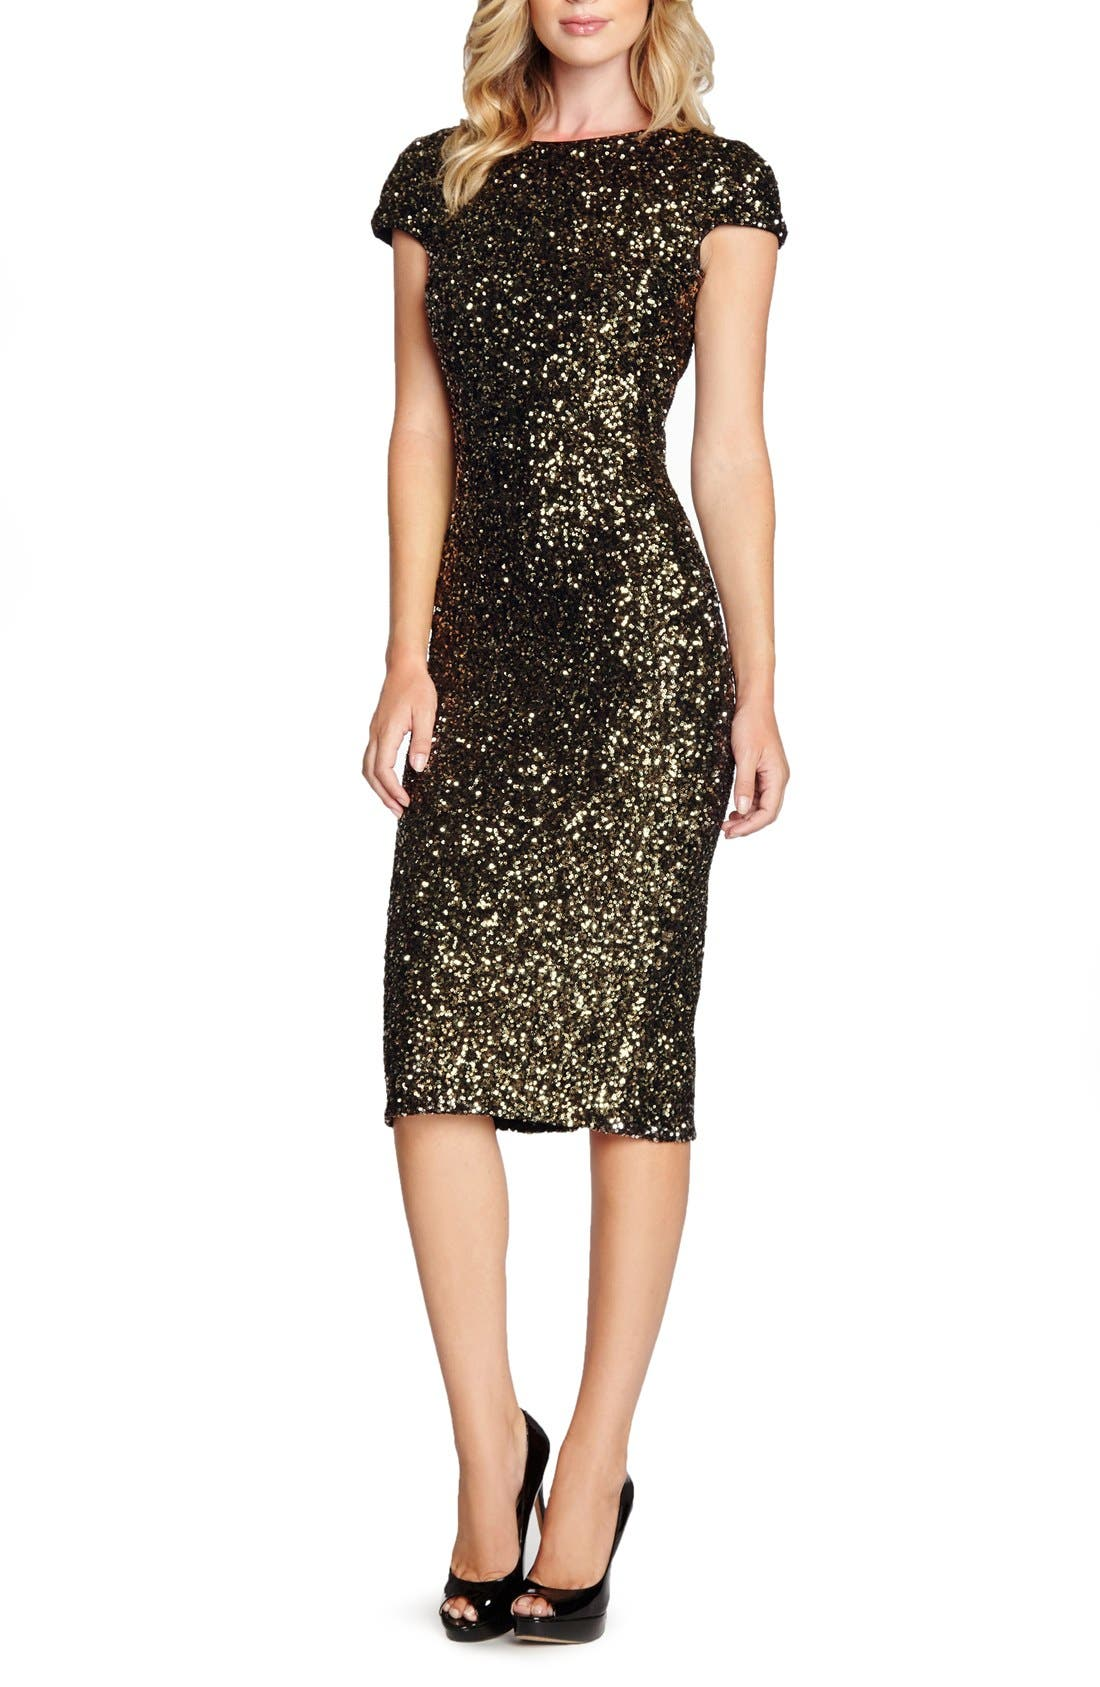 DRESS THE POPULATION 'Marcella' Open Back Sequin Body-Con